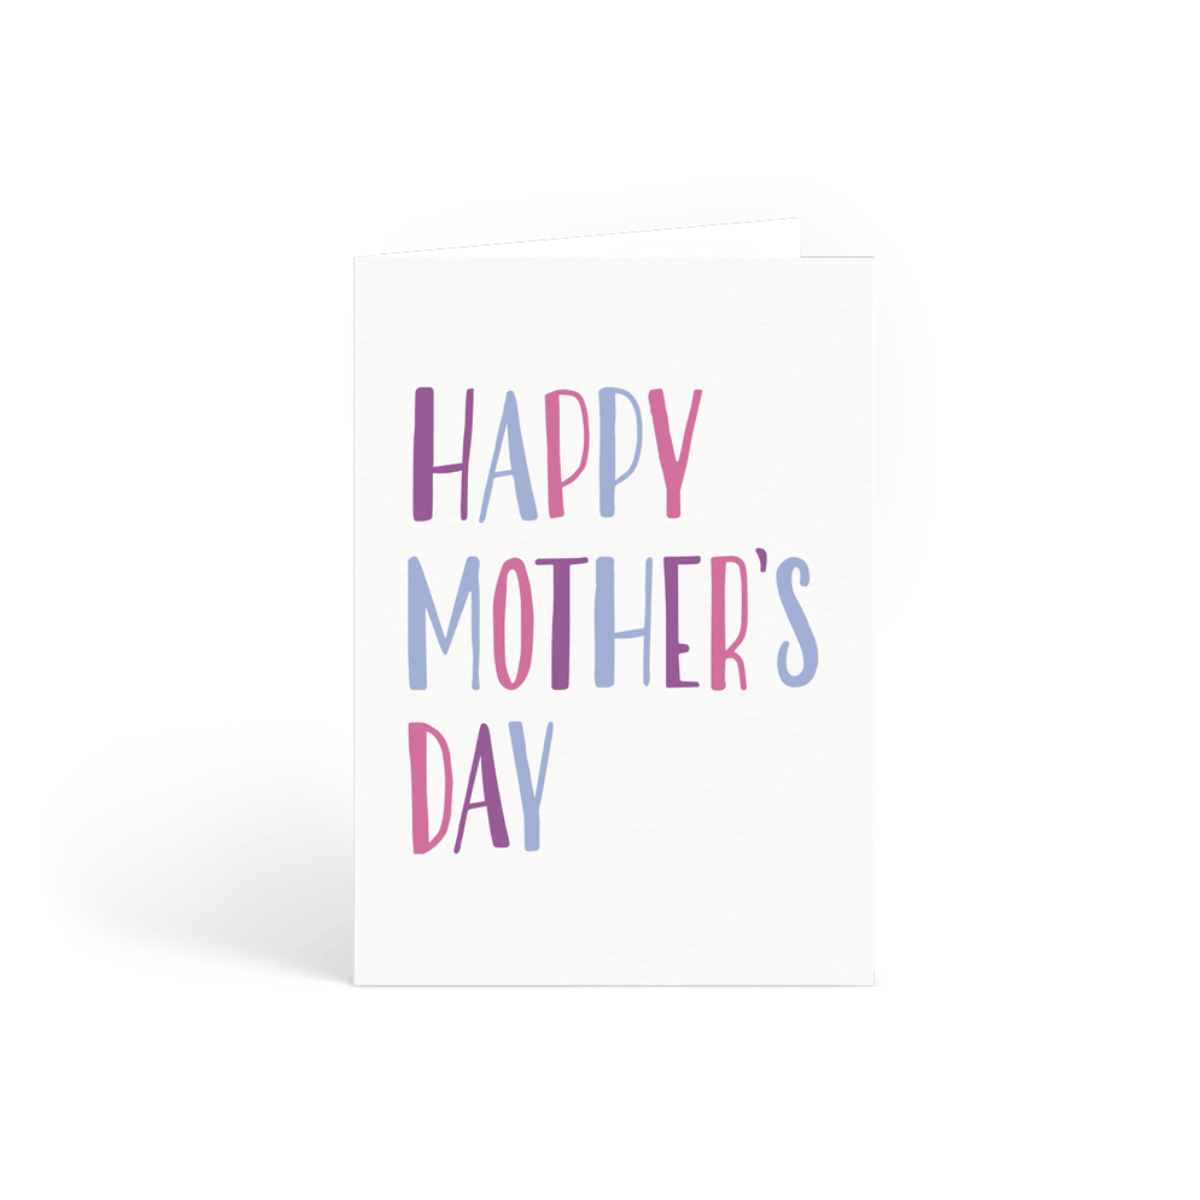 Https%3a%2f%2fwww.papier.com%2fproduct image%2f17916%2f2%2fhappy mother s day 4673 front 1486634519.png?ixlib=rb 1.1